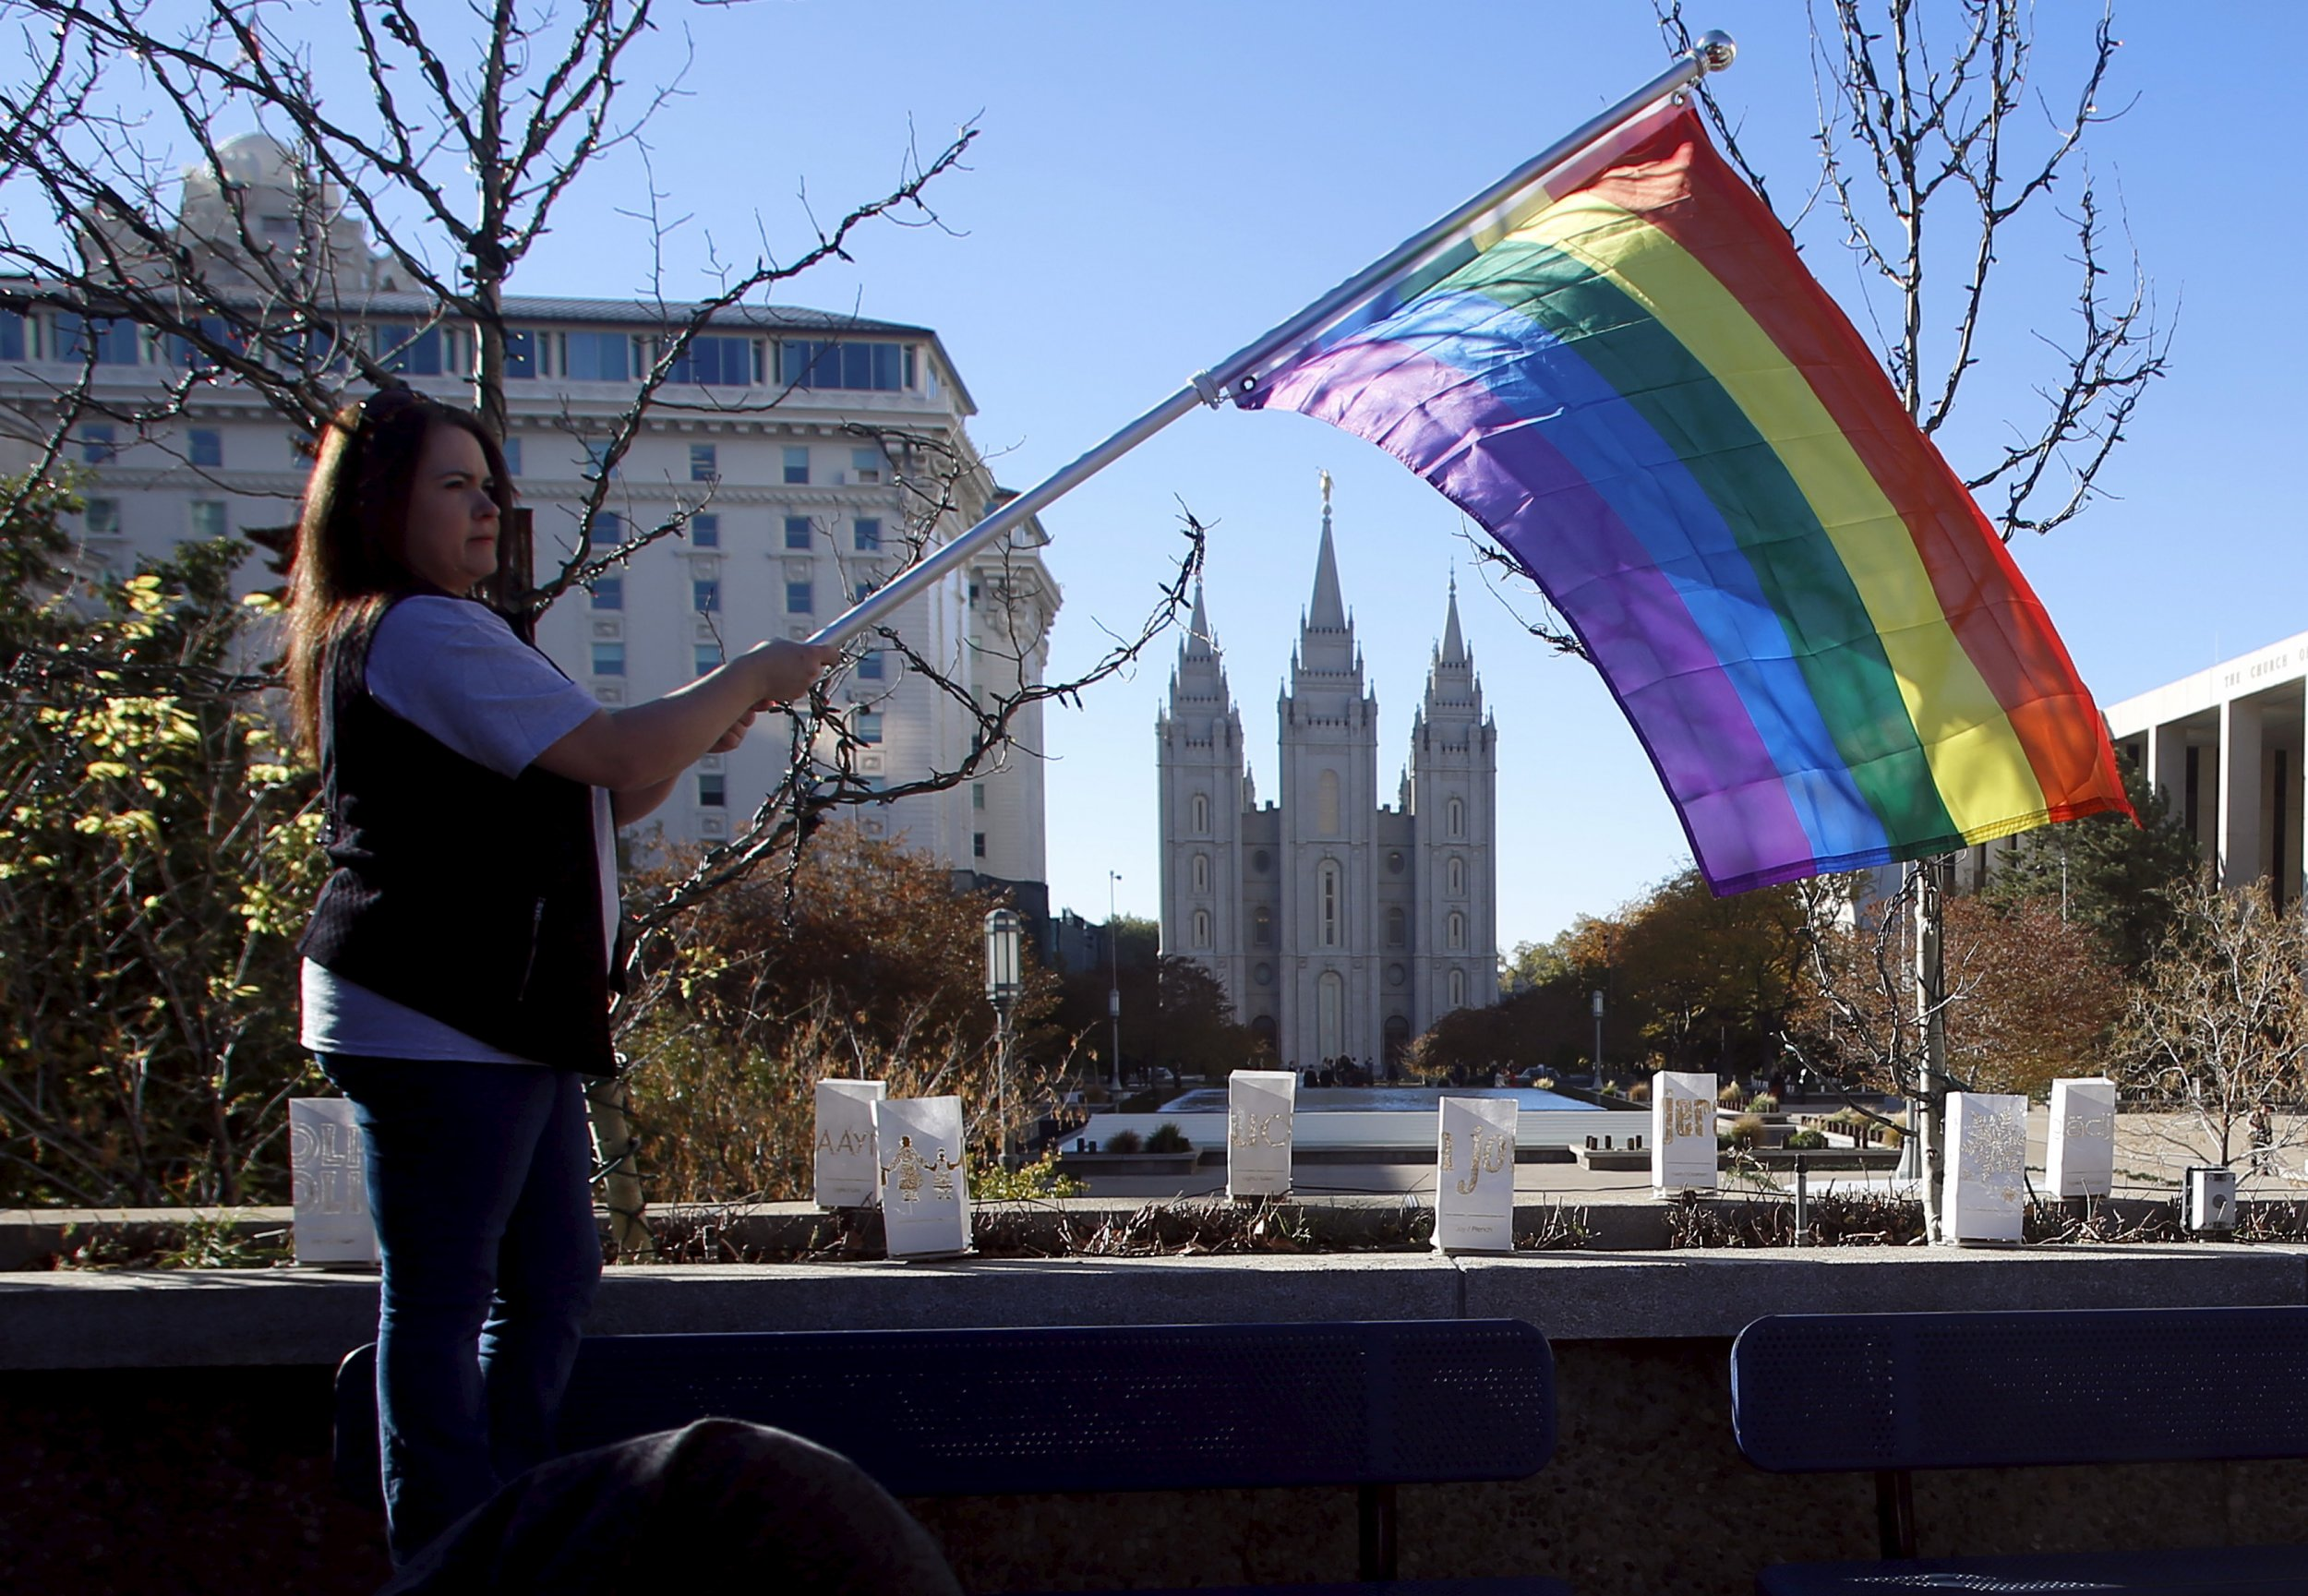 from Jordyn gay rights info on mormon protest